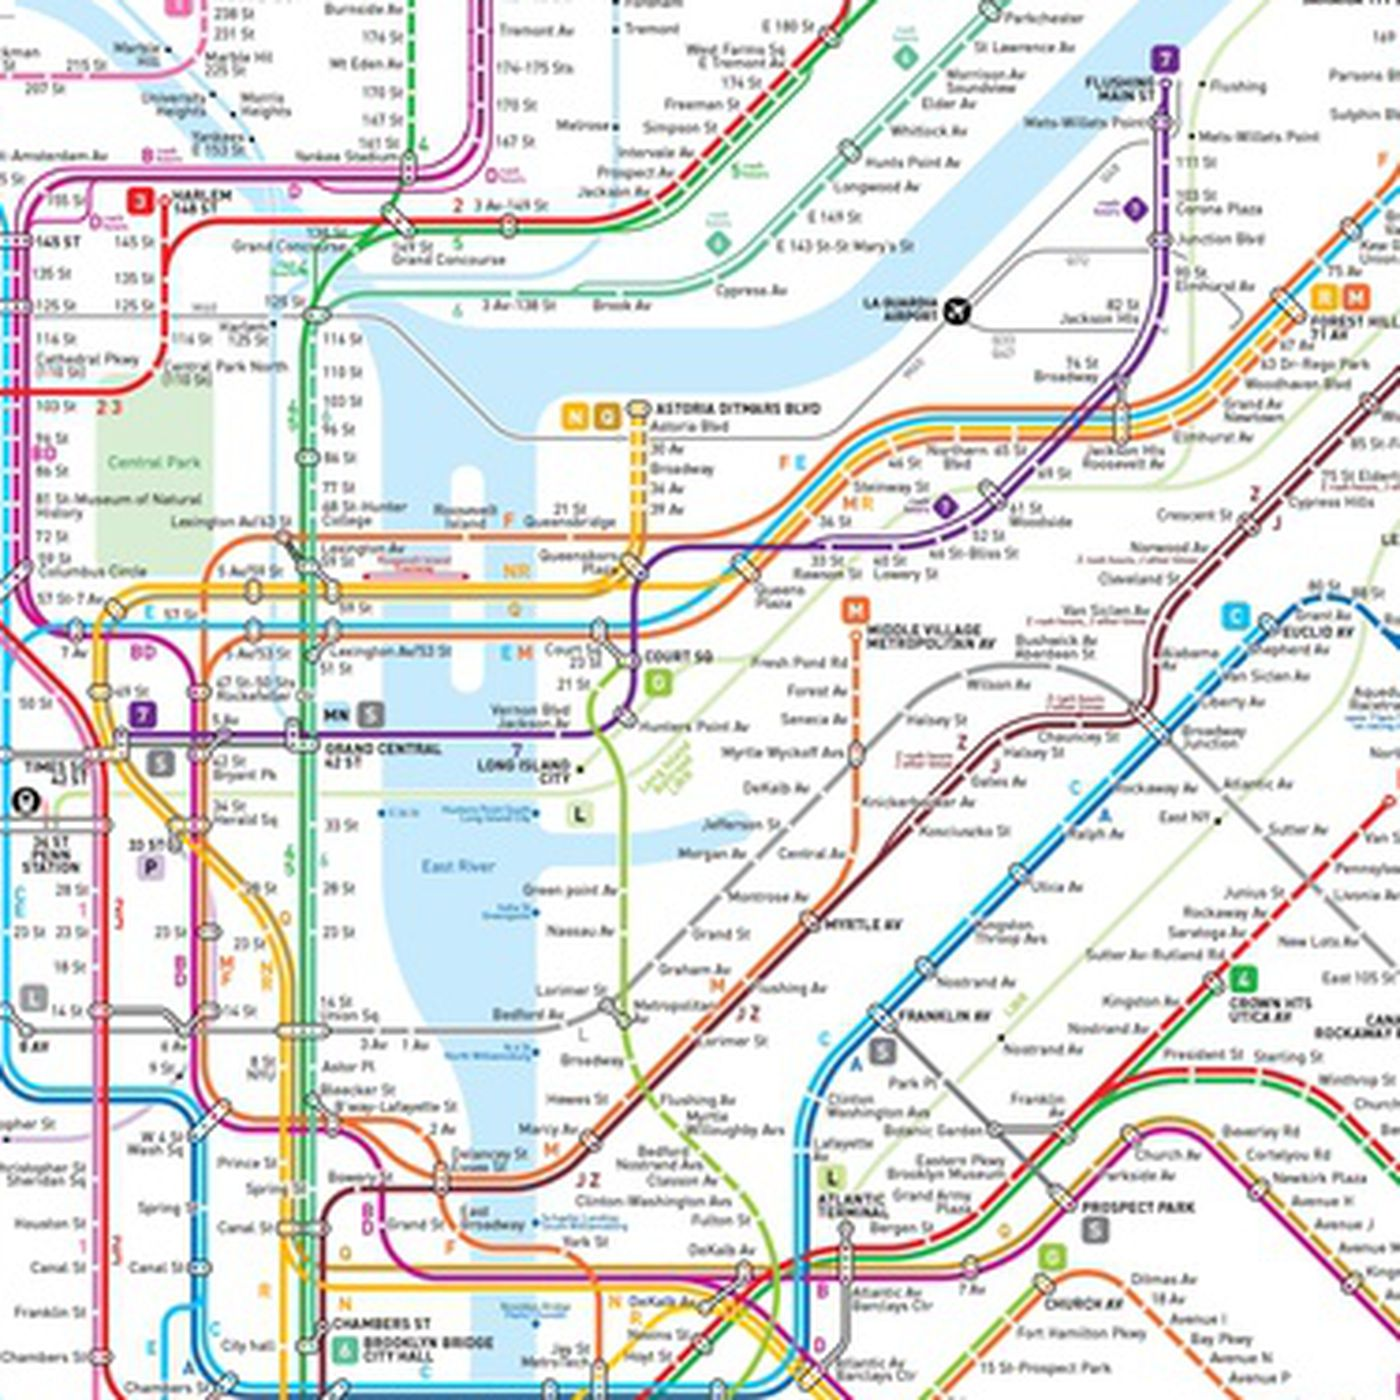 Subway Maps Of Nyc.This New Nyc Subway Map May Be The Clearest One Yet Curbed Ny